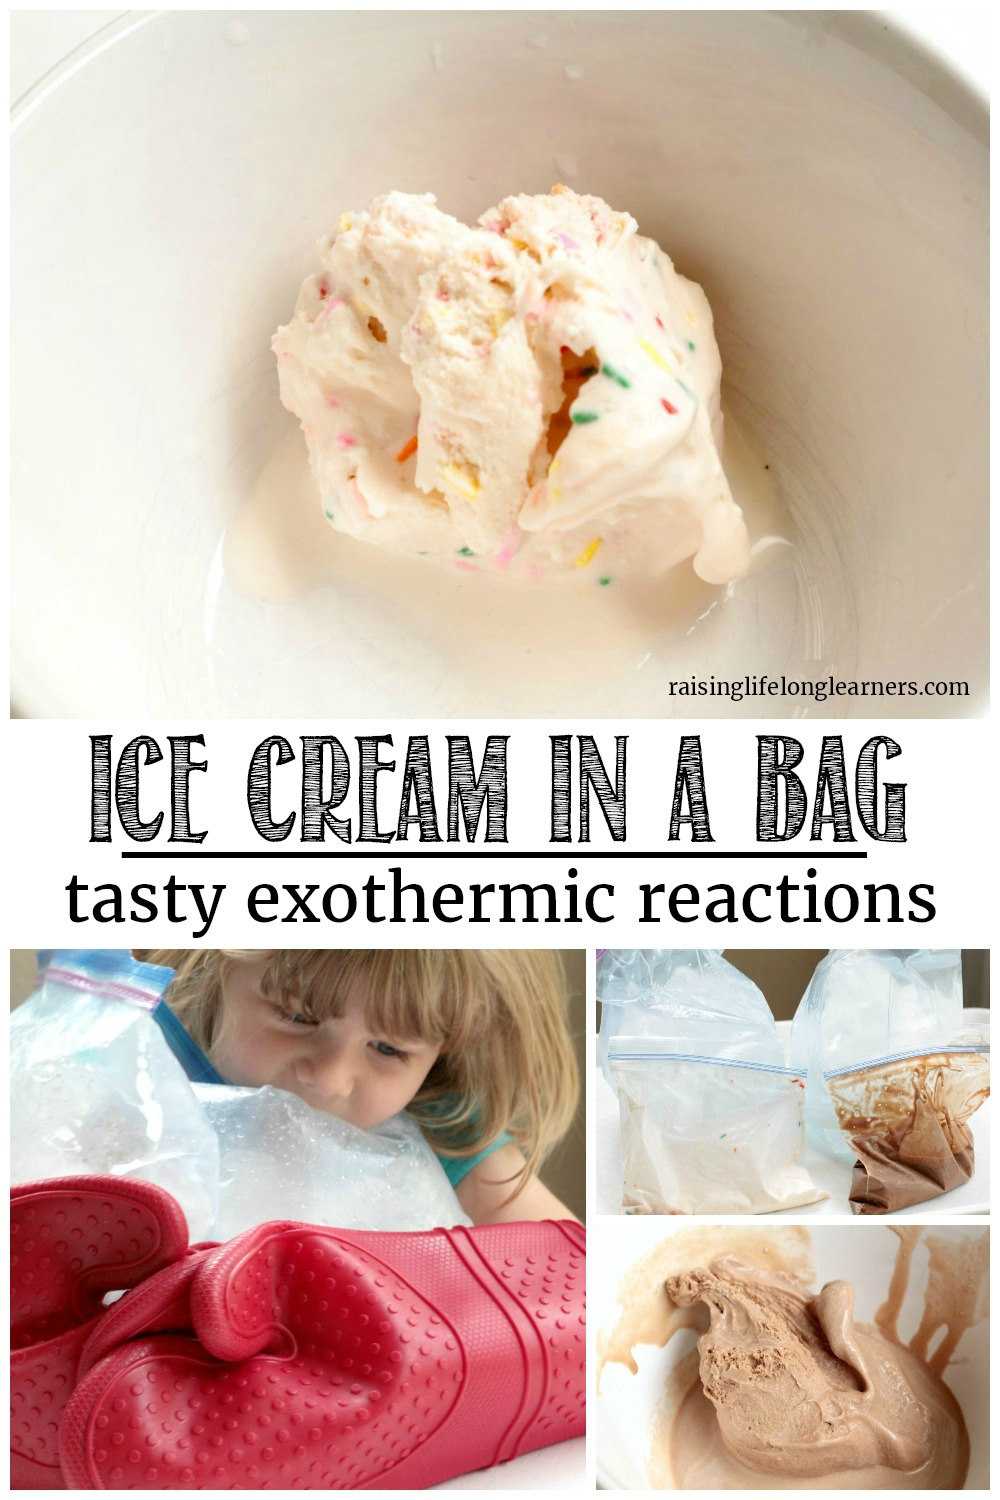 What is the best way to learn about exothermic reactions? Making ice cream in a bag of course! Kids will love this tasty science experiment!